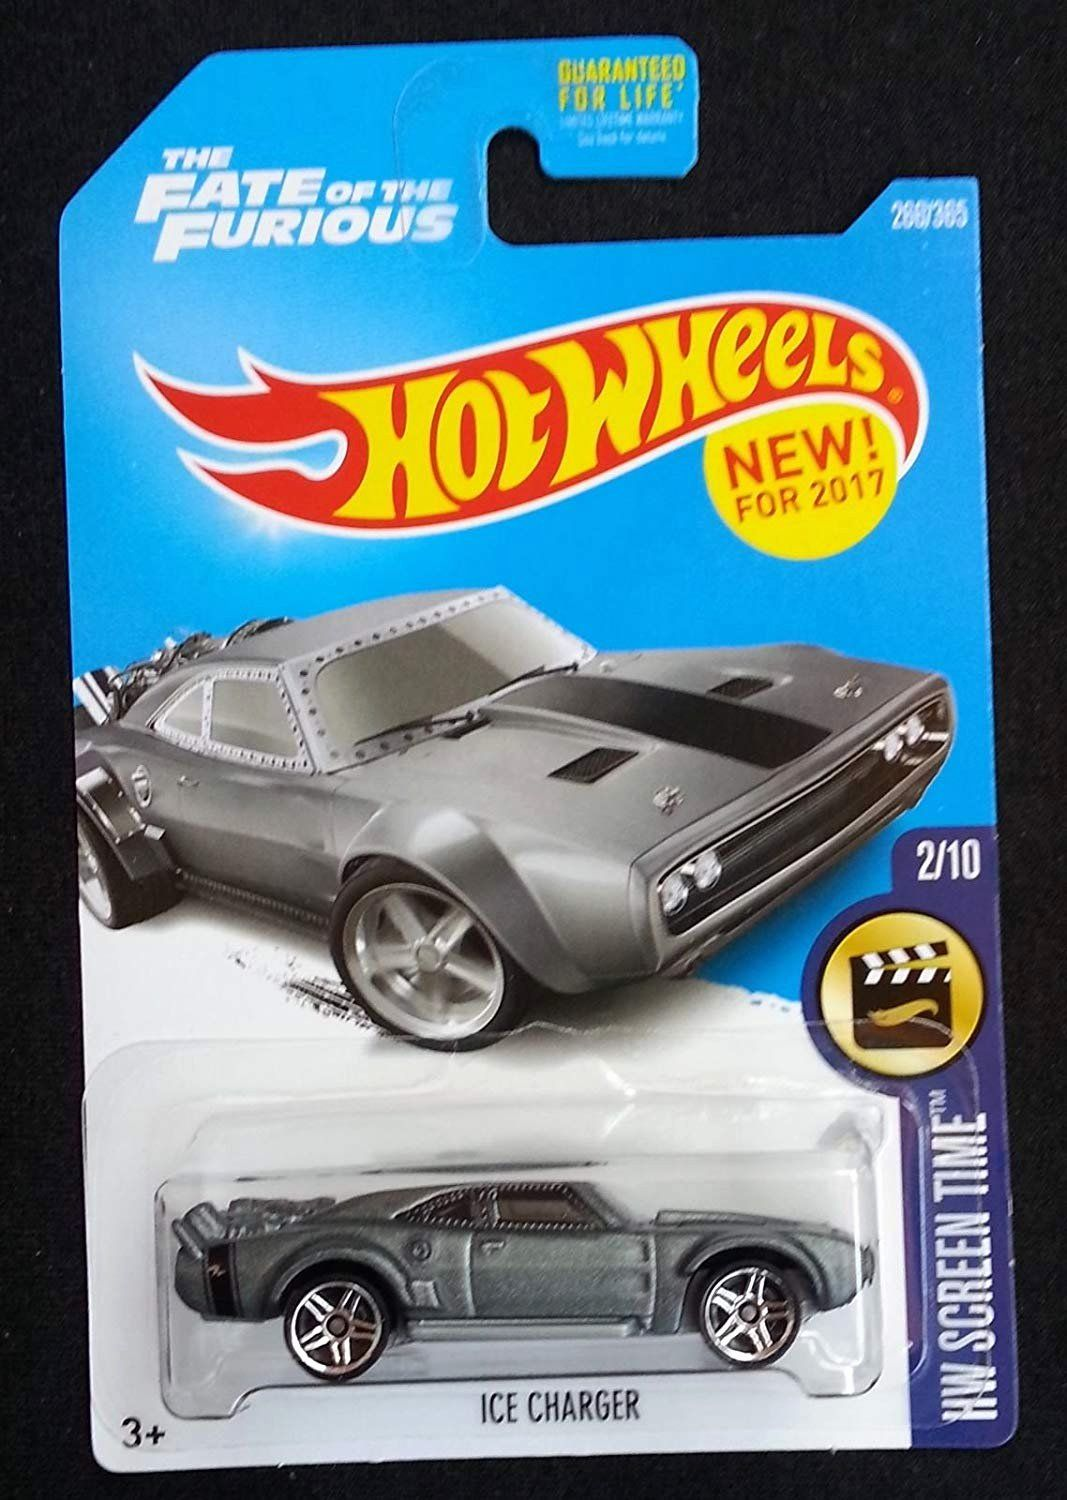 Fast And Furious Coloring Sheets New Hot Wheels 2017 Hw Screen Time The Fate Of The Furious Ice Charger 266 365 Gray Coloring Sheets Fast And Furious Color